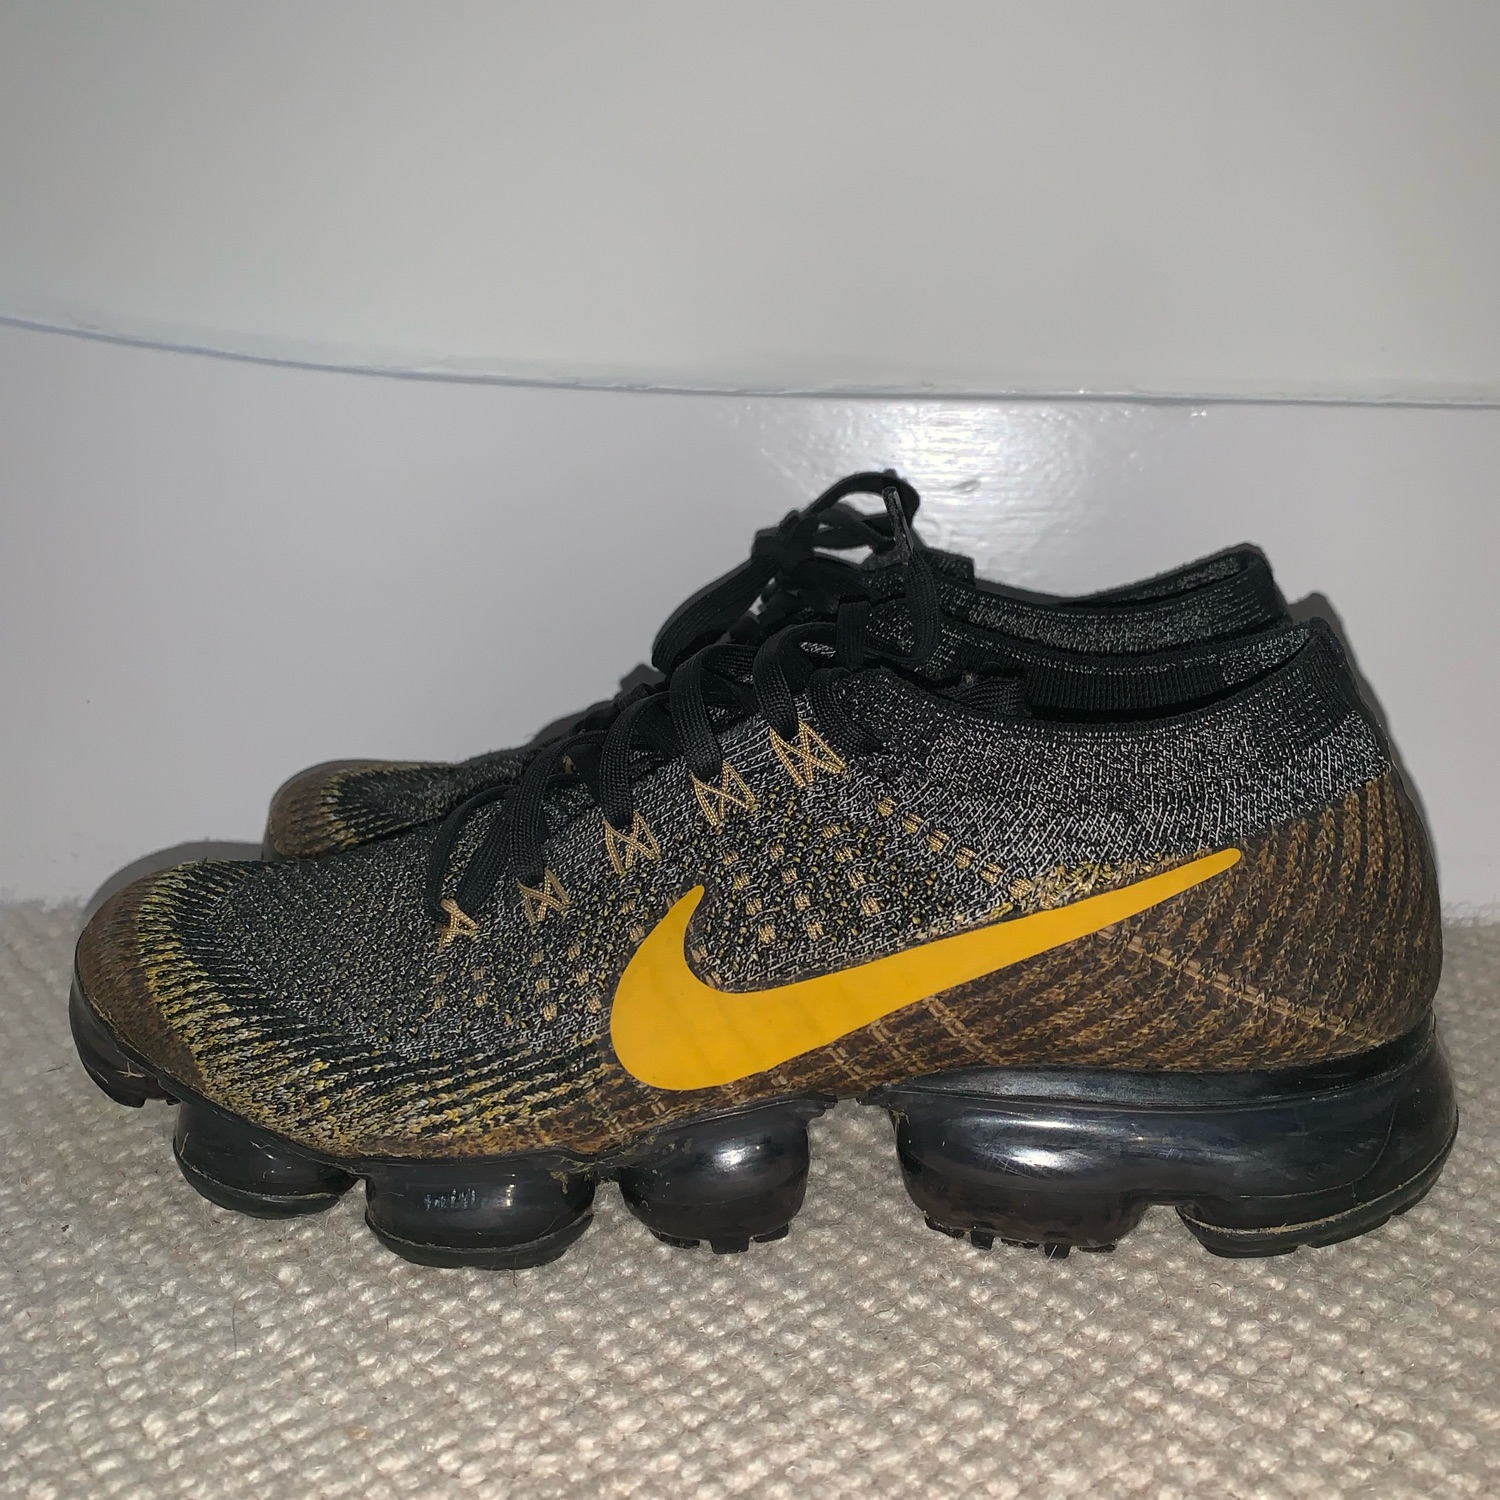 Vapormax Flyknit Different Soles Inside No Box